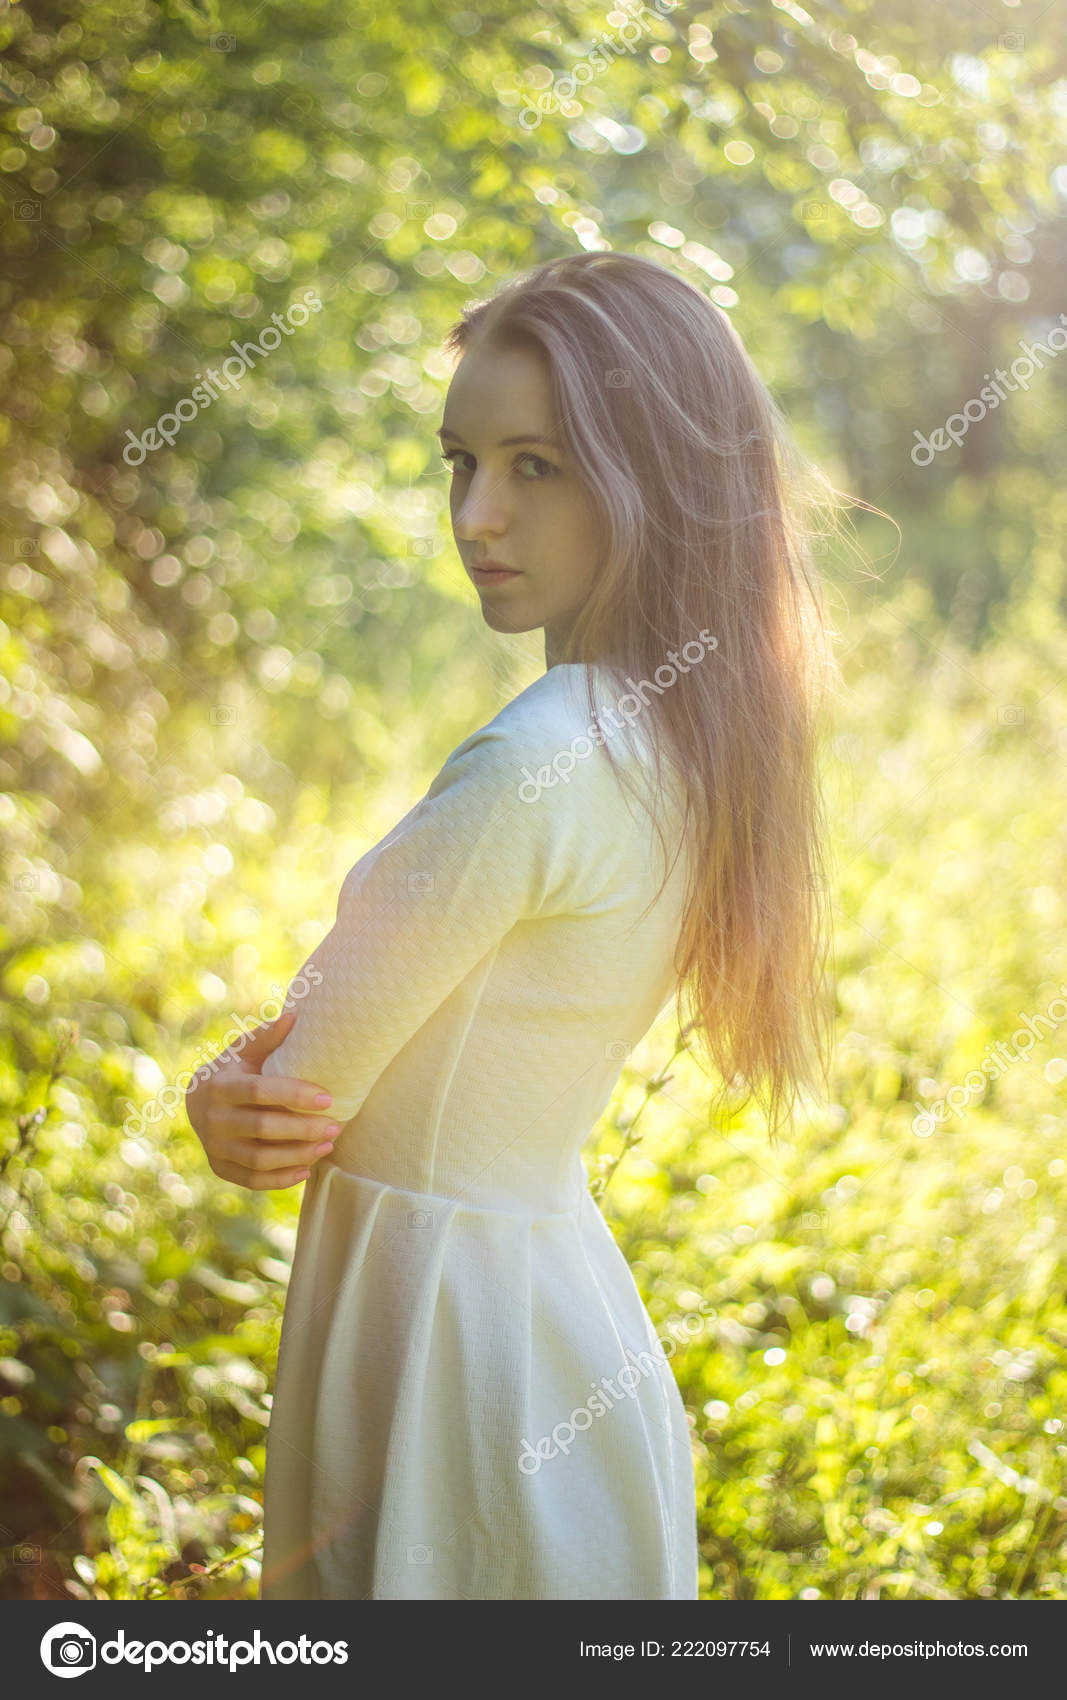 Beautiful Girl White Dress Leaves Background Natural Beauty Concept Stock Photo C Anastasia2425 Gmail Com 222097754